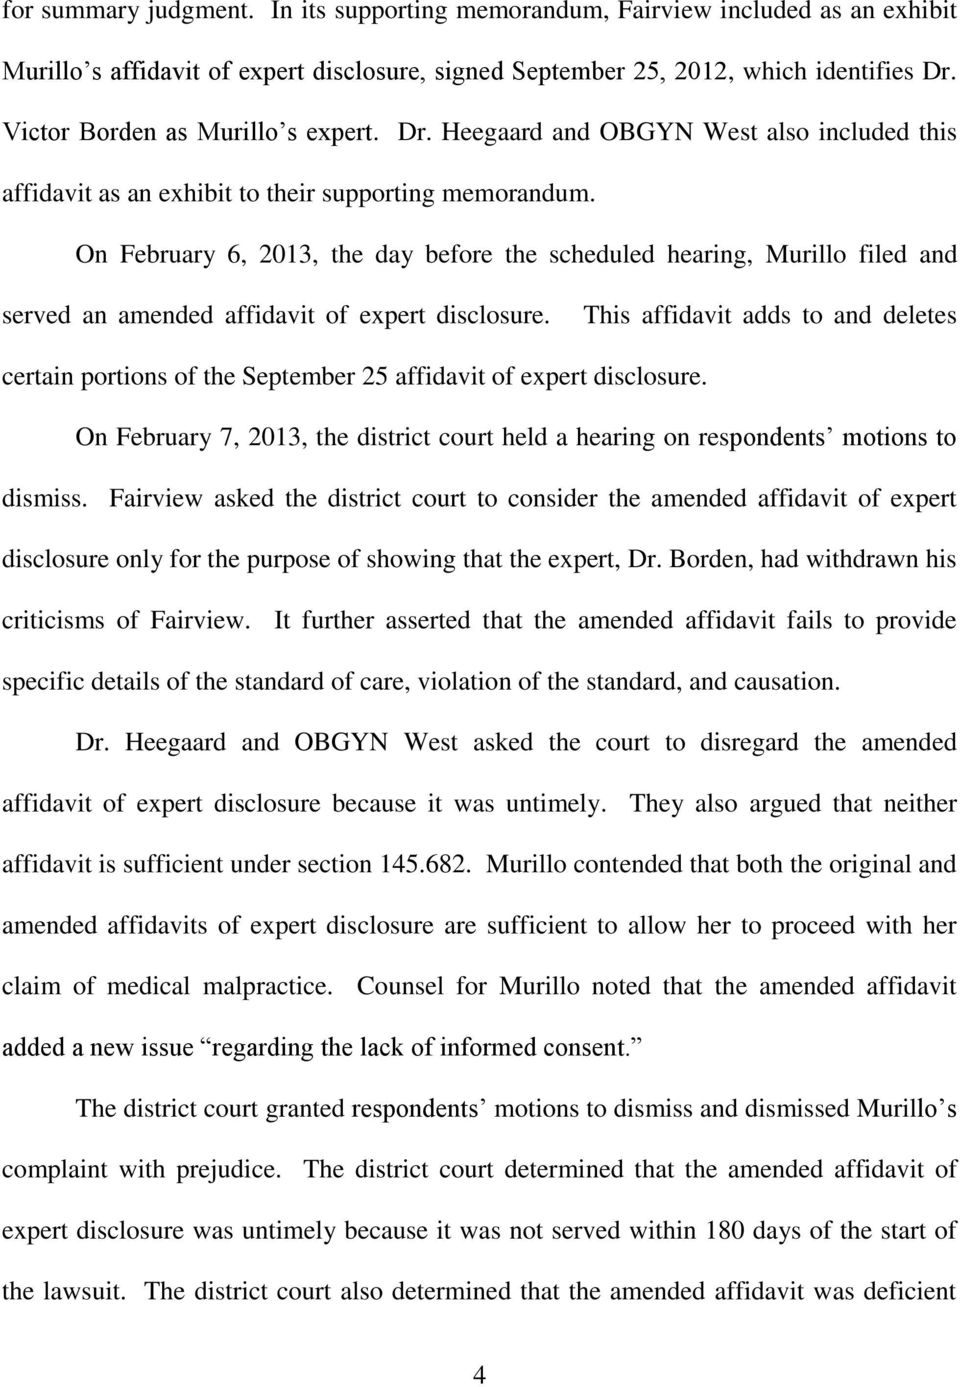 On February 6, 2013, the day before the scheduled hearing, Murillo filed and served an amended affidavit of expert disclosure.